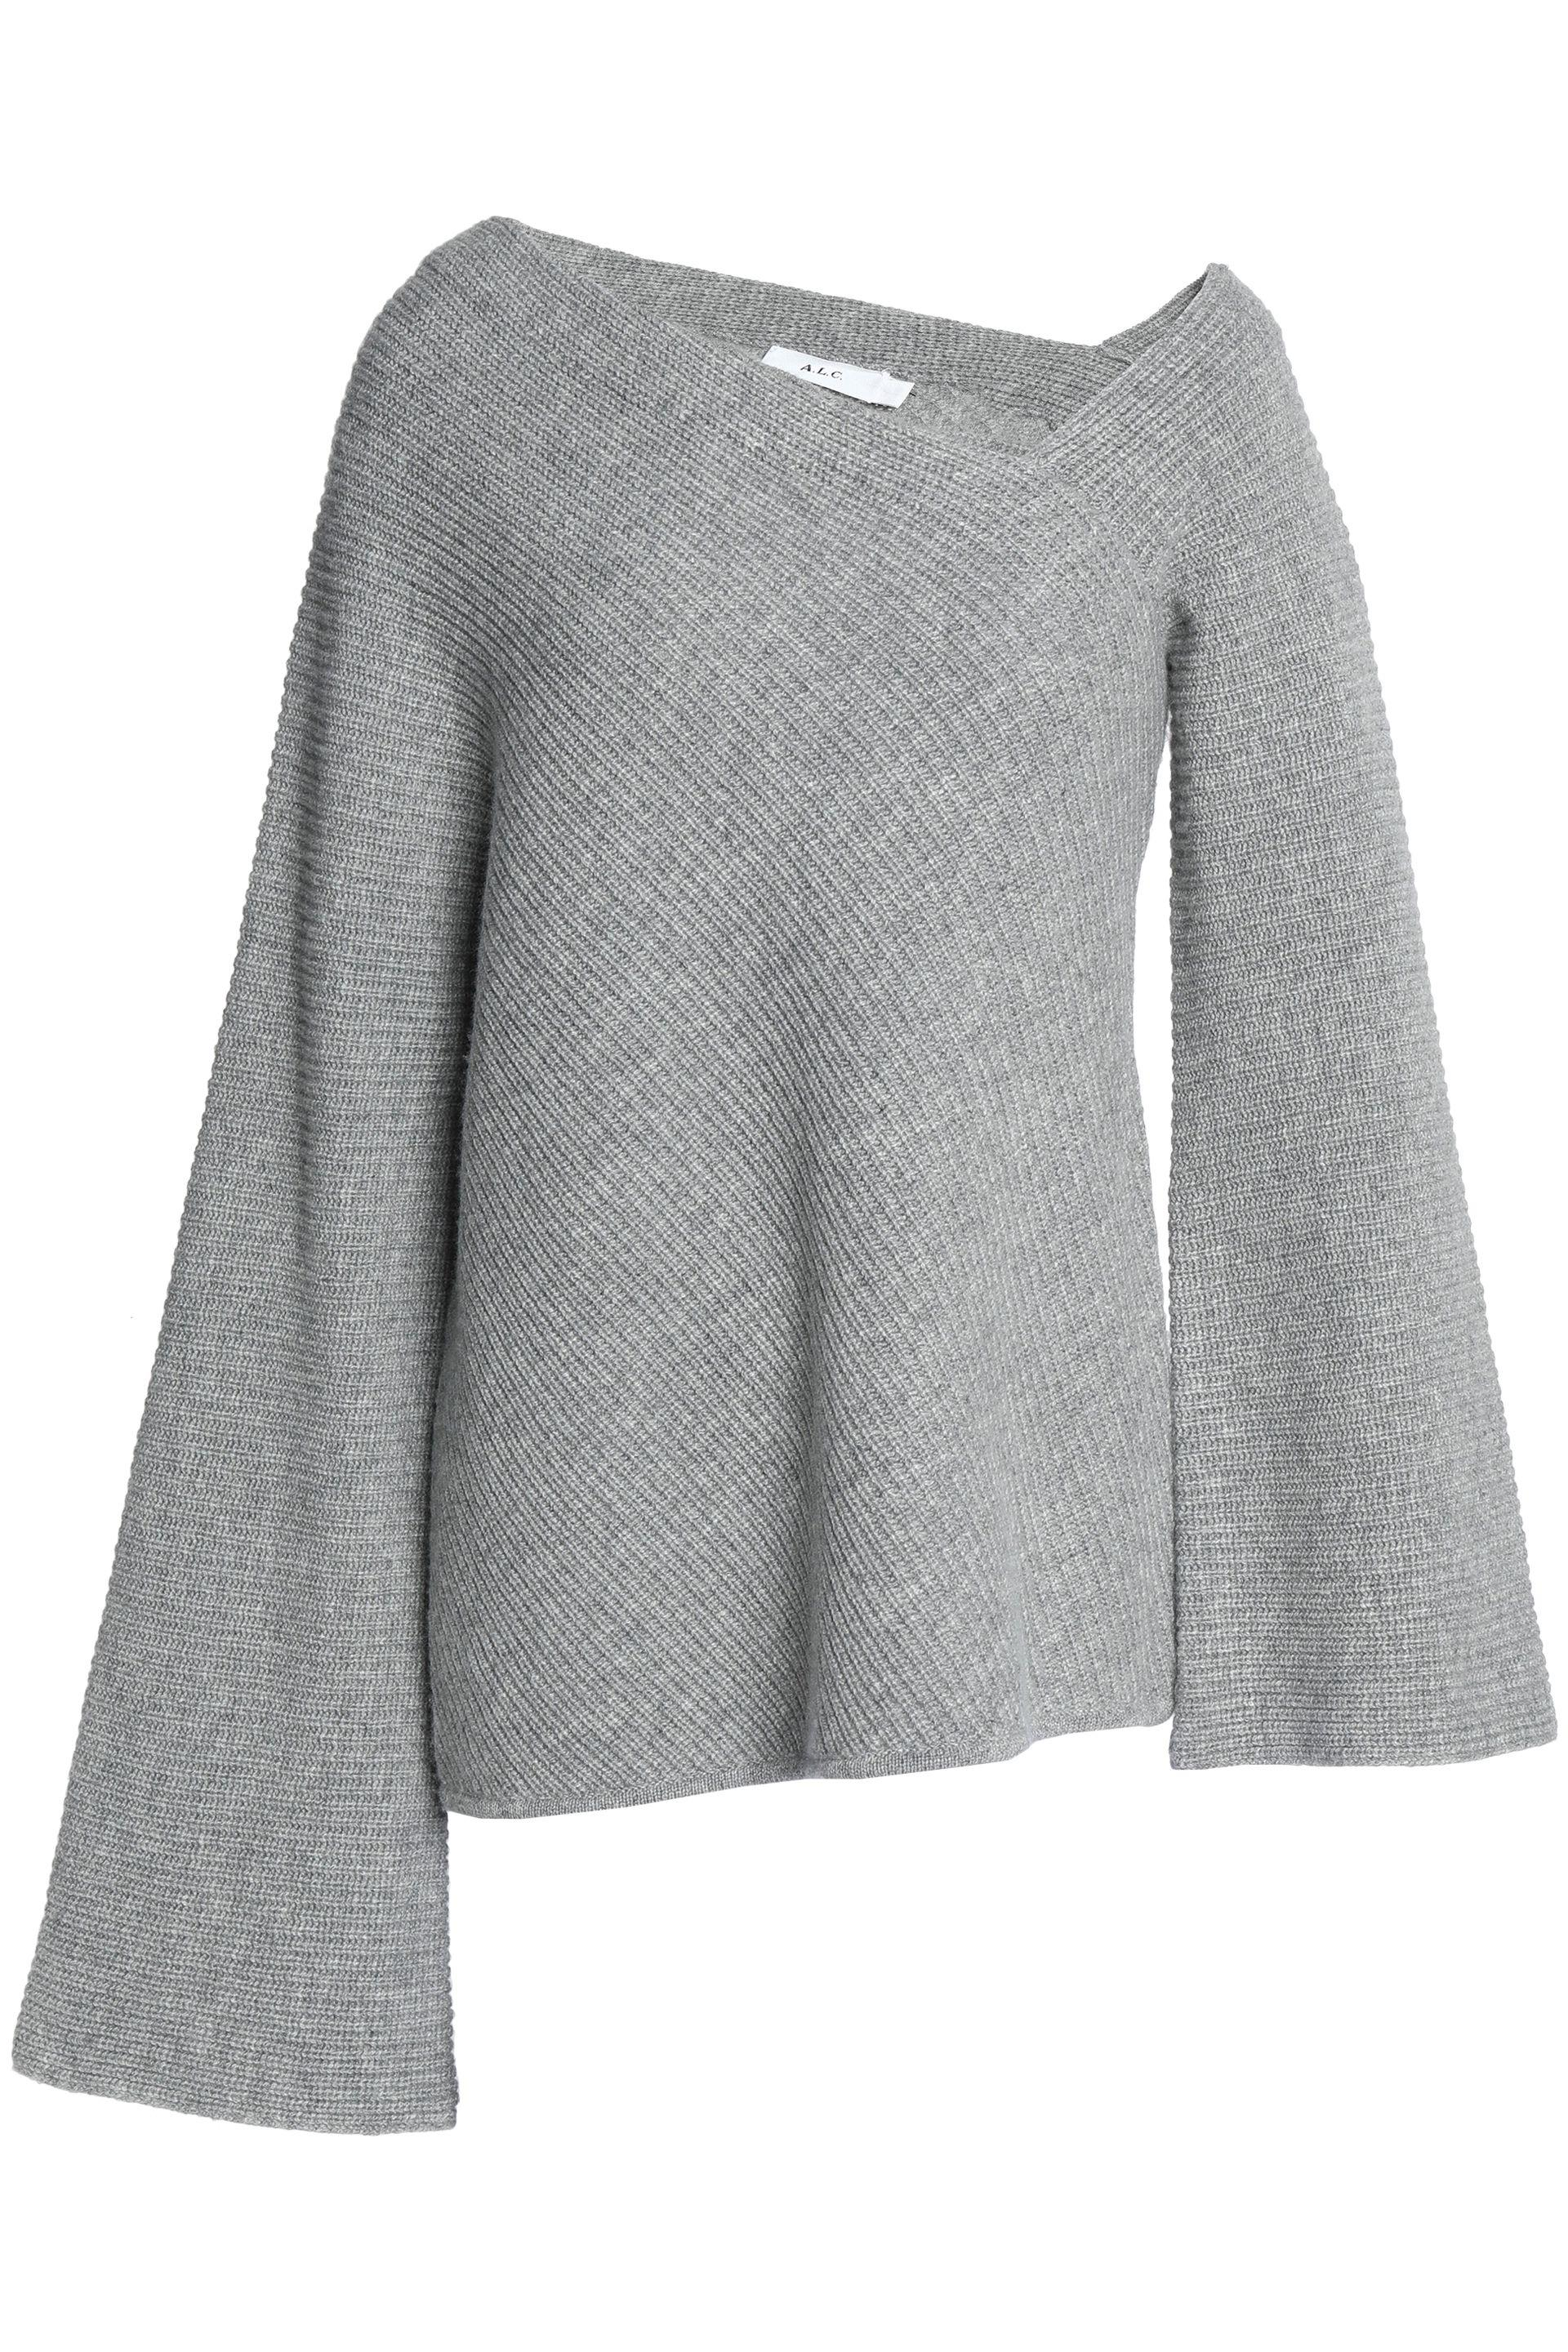 Nicekicks Authentic Cheap Price A.l.c. Woman Asymmetric Ribbed Wool And Cashmere-blend Sweater Gray Size L A.L.C. Dlcc5sV8